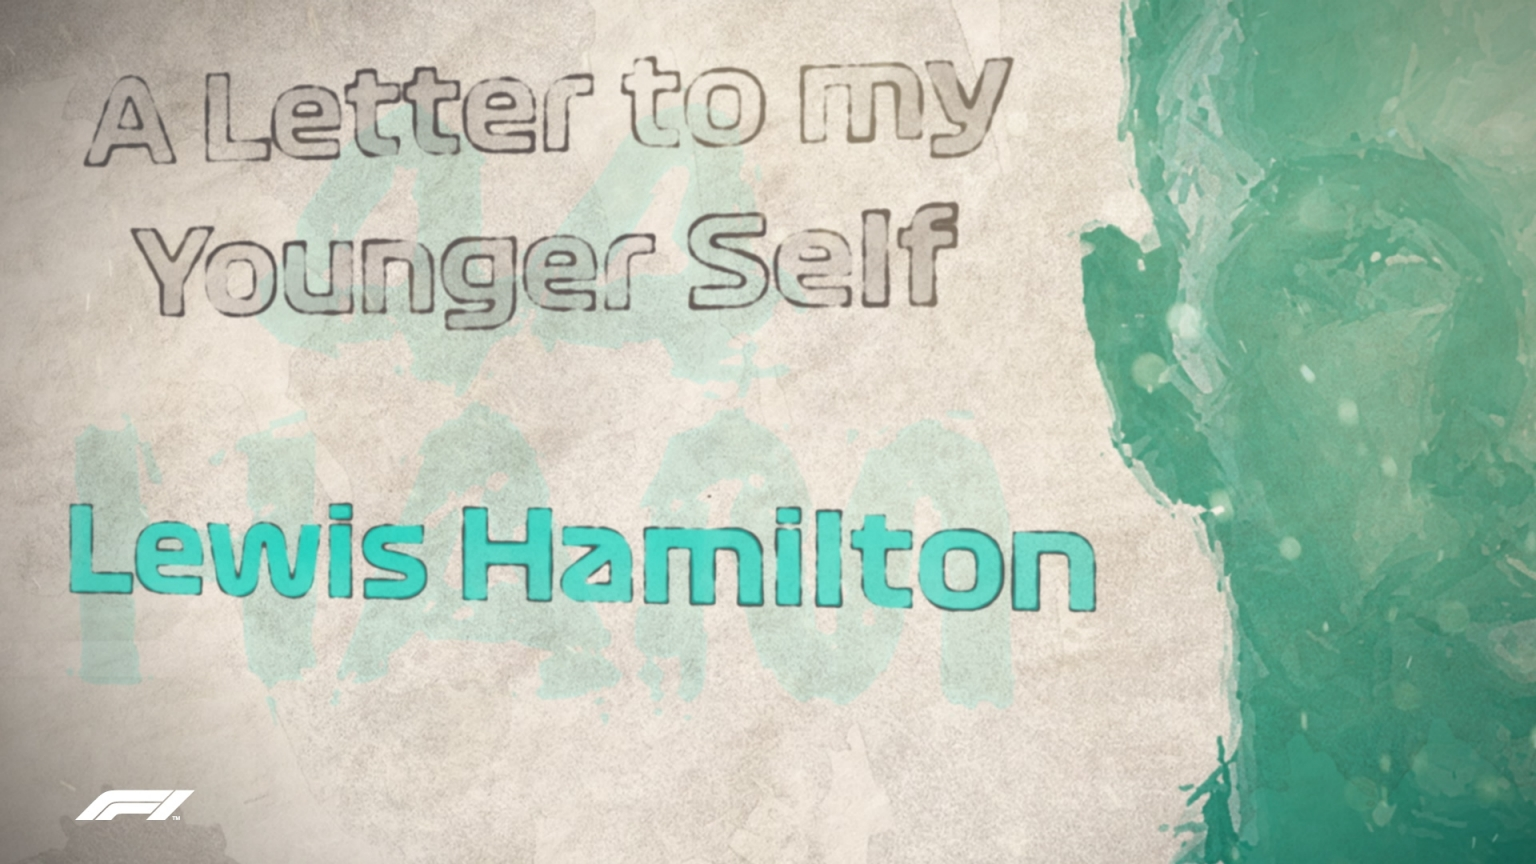 A LETTER TO MY YOUNGER SELF: Lewis Hamilton